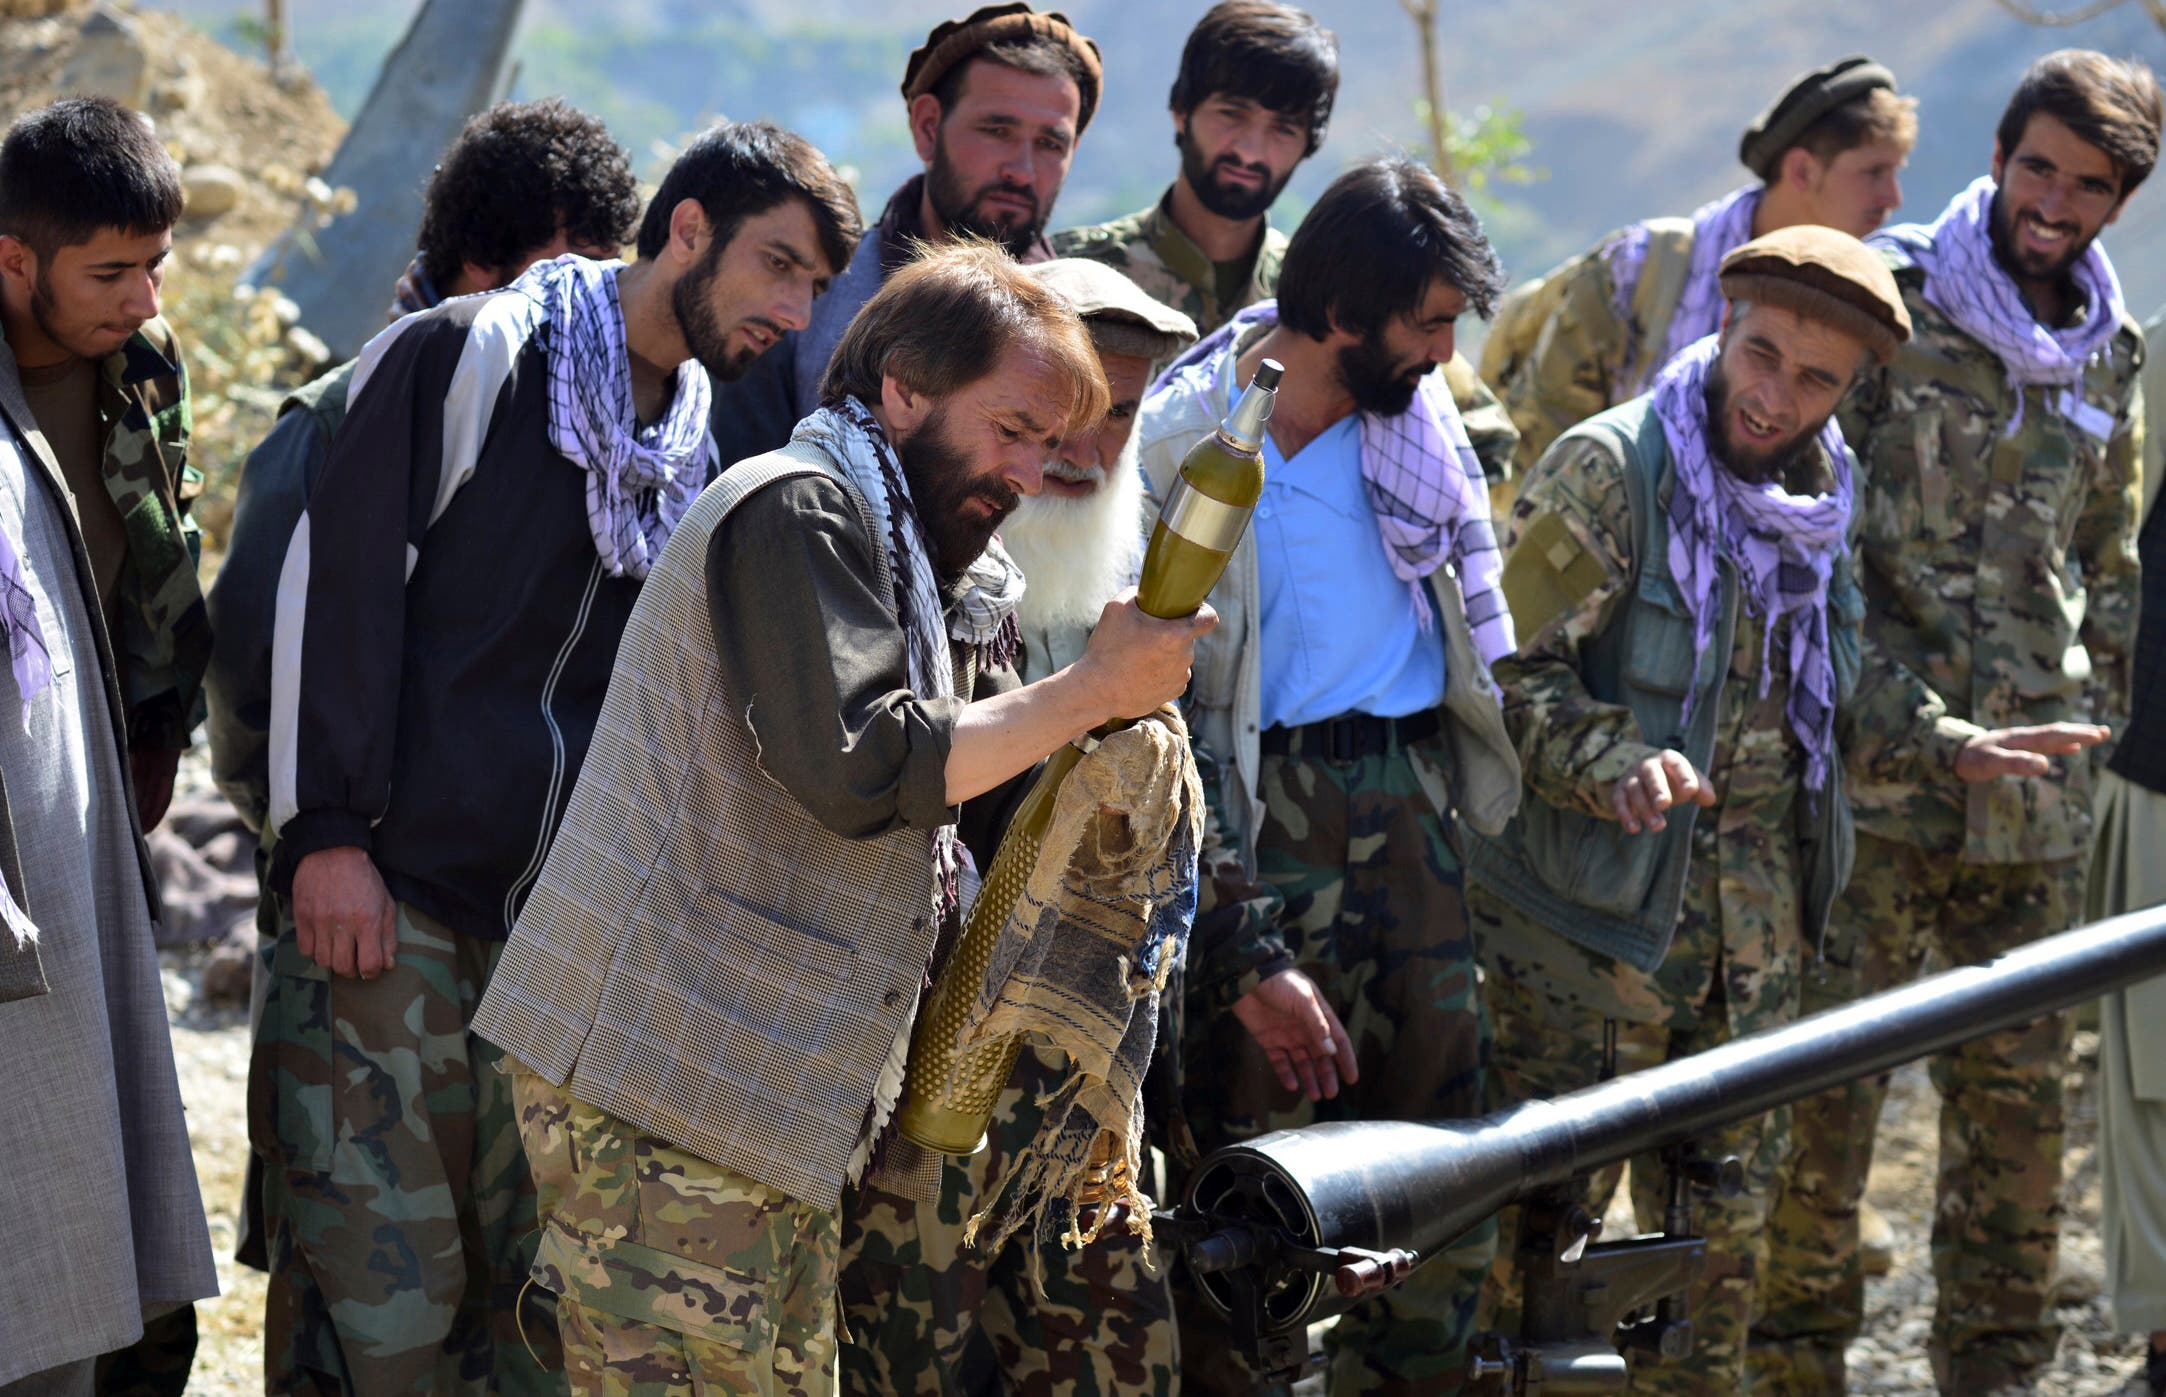 Ahmed Masoud in the last message: Let's keep fighting in the Panjshir